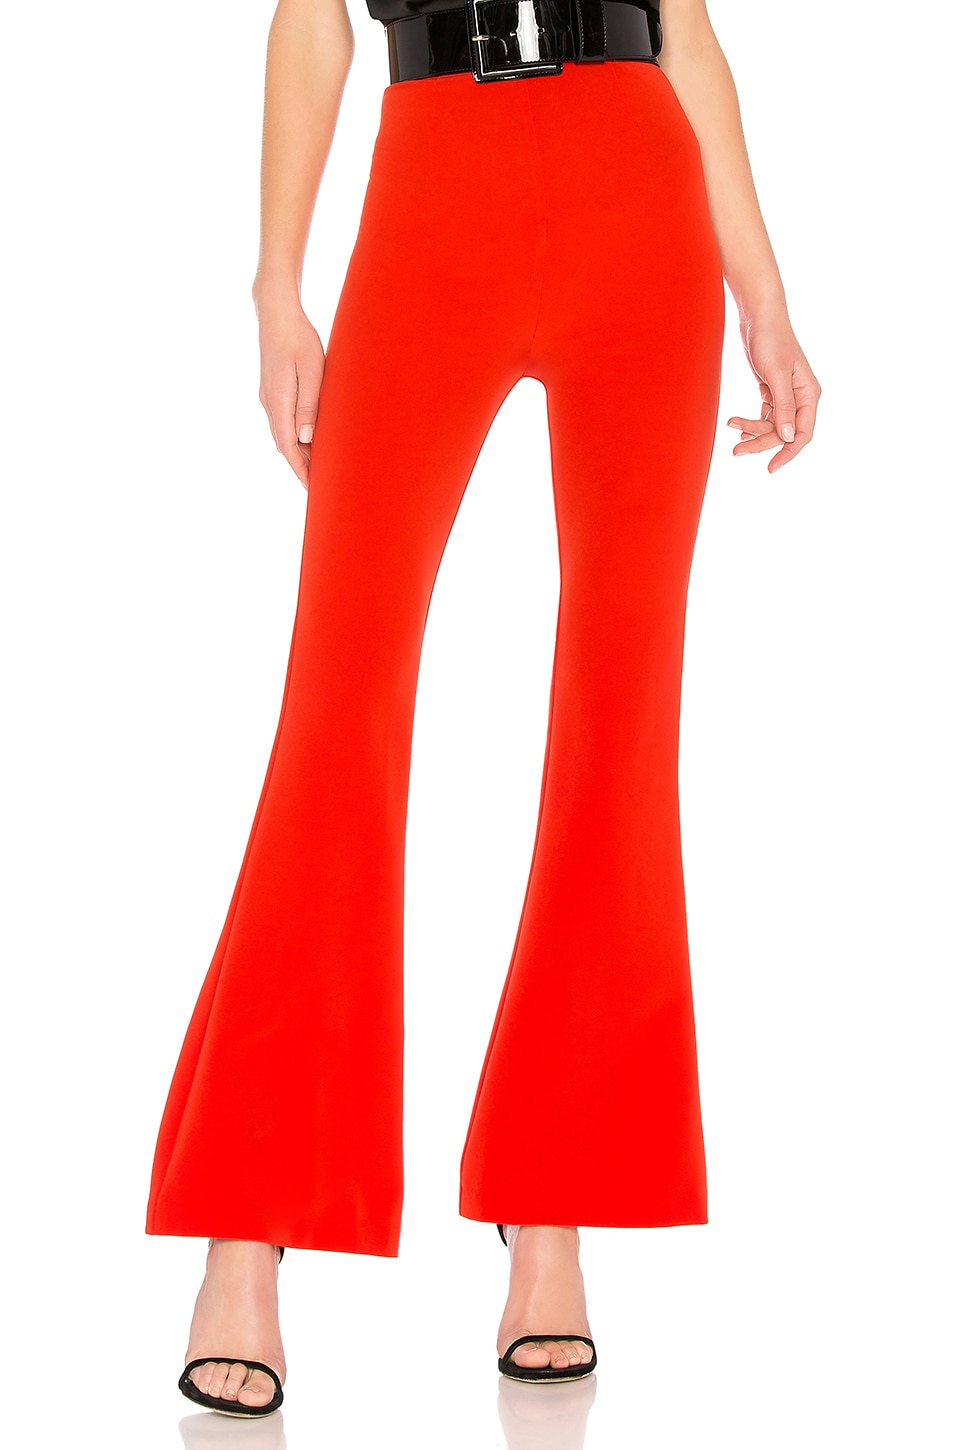 Michael Costello x REVOLVE Margeaux Pant in Red